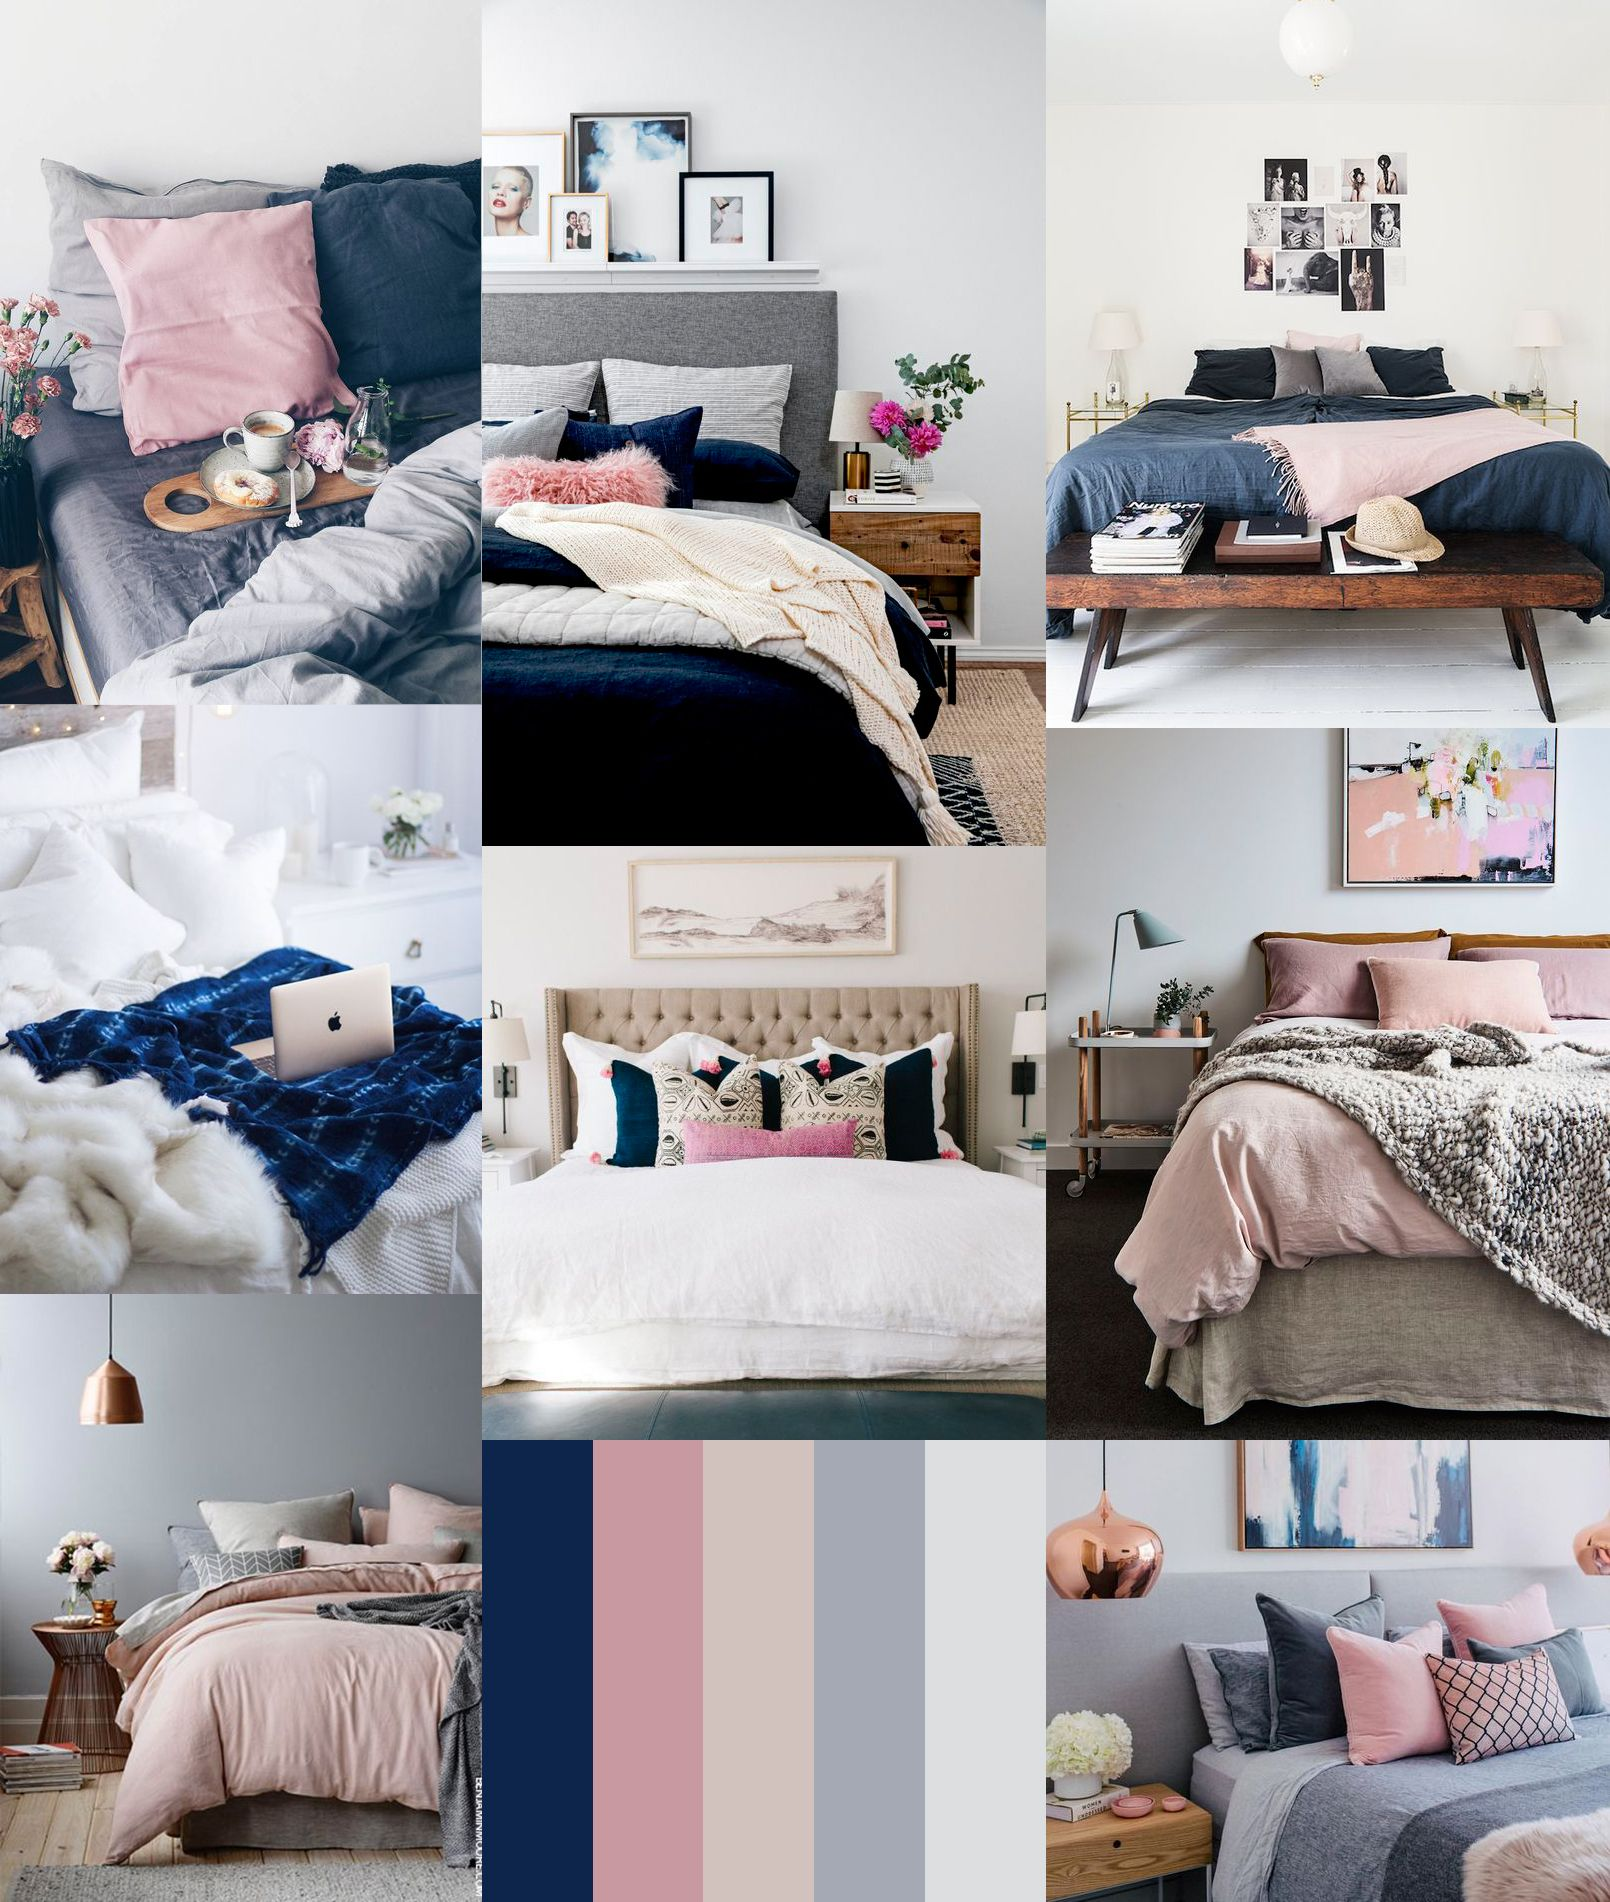 3 Indigo Denim Navy Slate Blue Gray Blush Brown Dorm Room Color Schemes Dorm Room Colors Bedroom Design